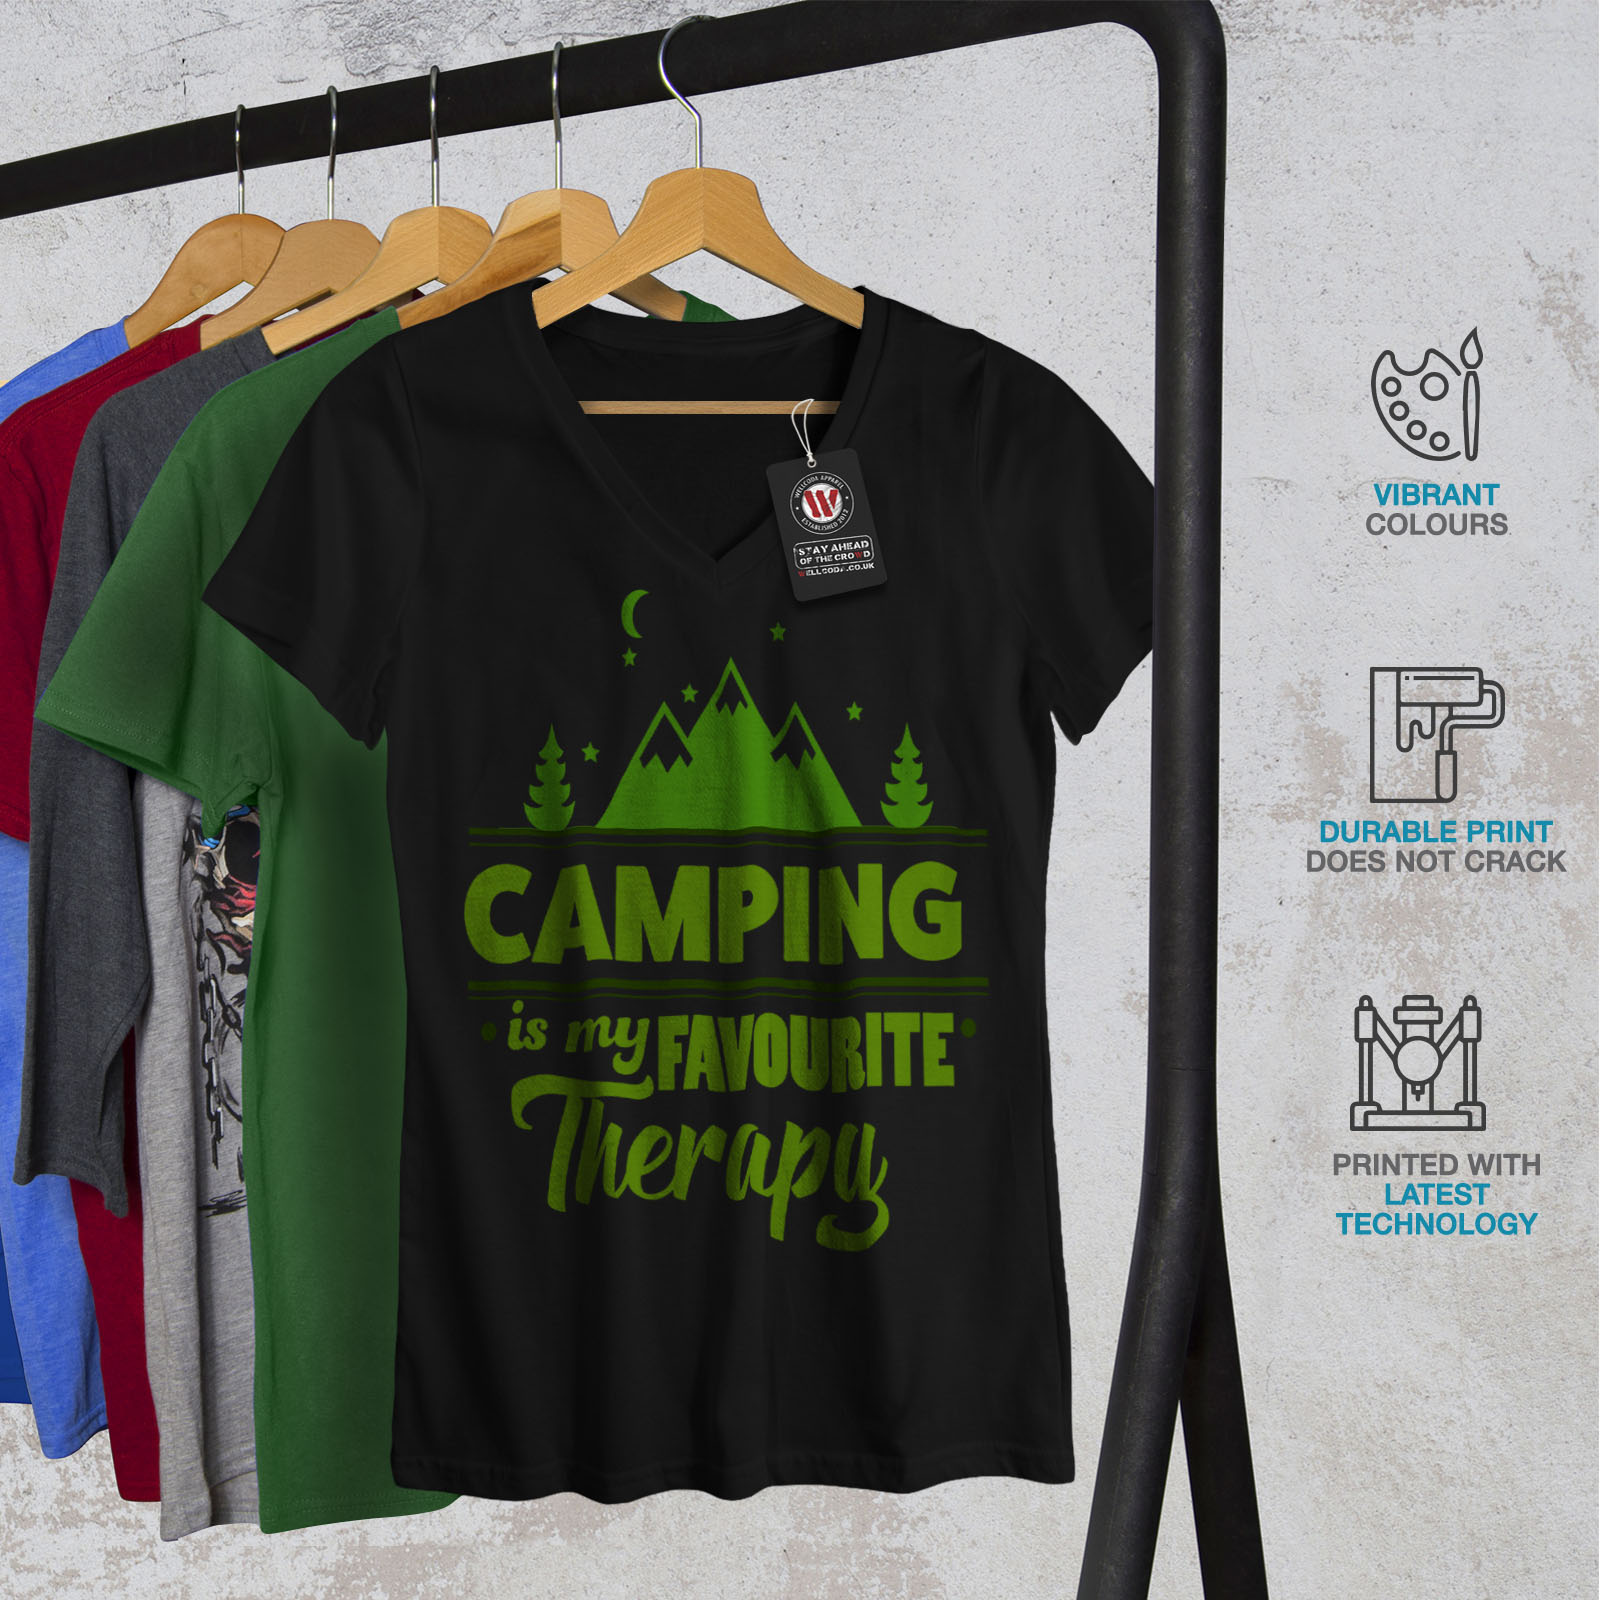 Wellcoda-Camping-Therapy-Womens-V-Neck-T-shirt-Outdoor-Graphic-Design-Tee thumbnail 4